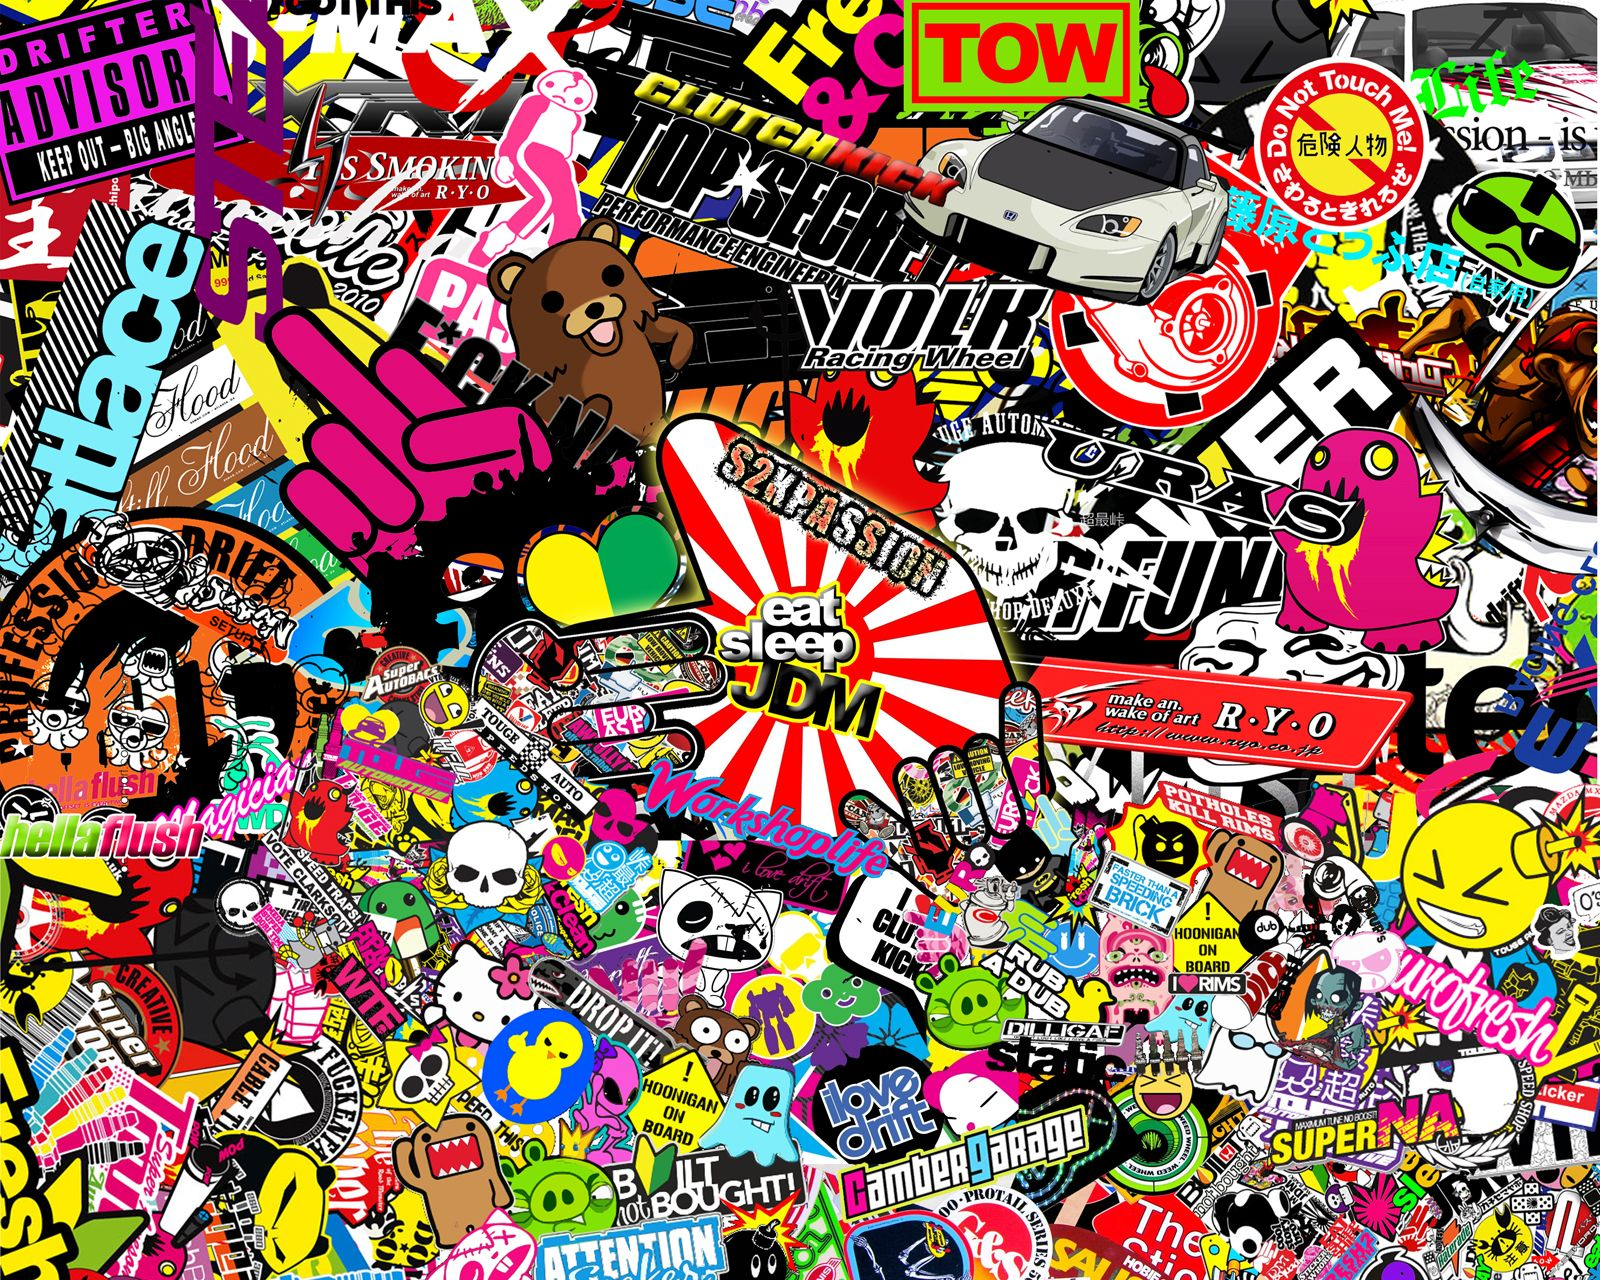 jdm sticker bomb wallpaper image download stickers style